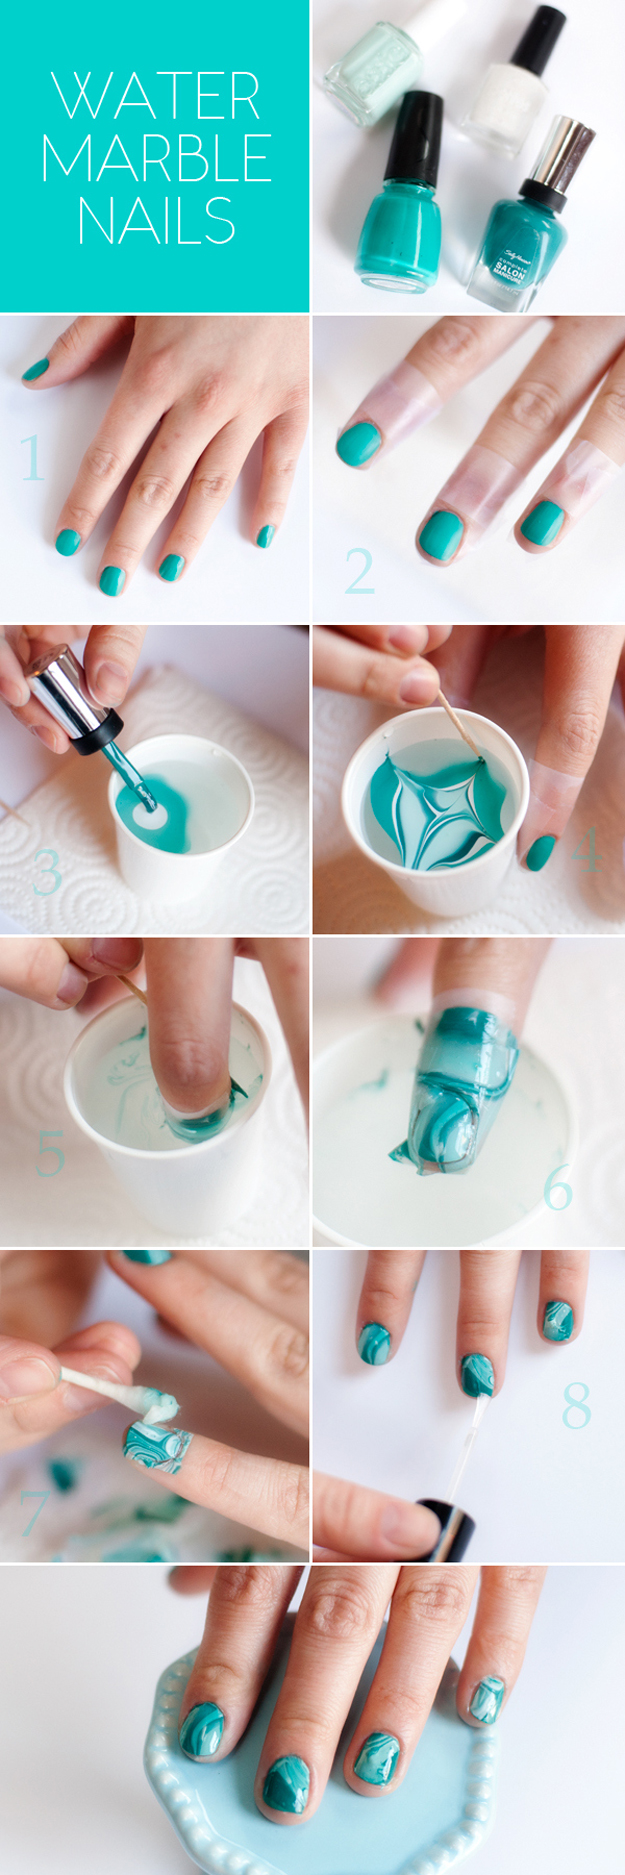 Cool Nail Art Ideas - How to Do Water Marble Nails - Nail Tutorials for Teens and Adults - Fun for Teens and Tweens- Nail Polish Design Ideas and Art Tutorial - Easy DIY Nail Designs - Step By Step Tutorials and Instructions for Manicures at Home